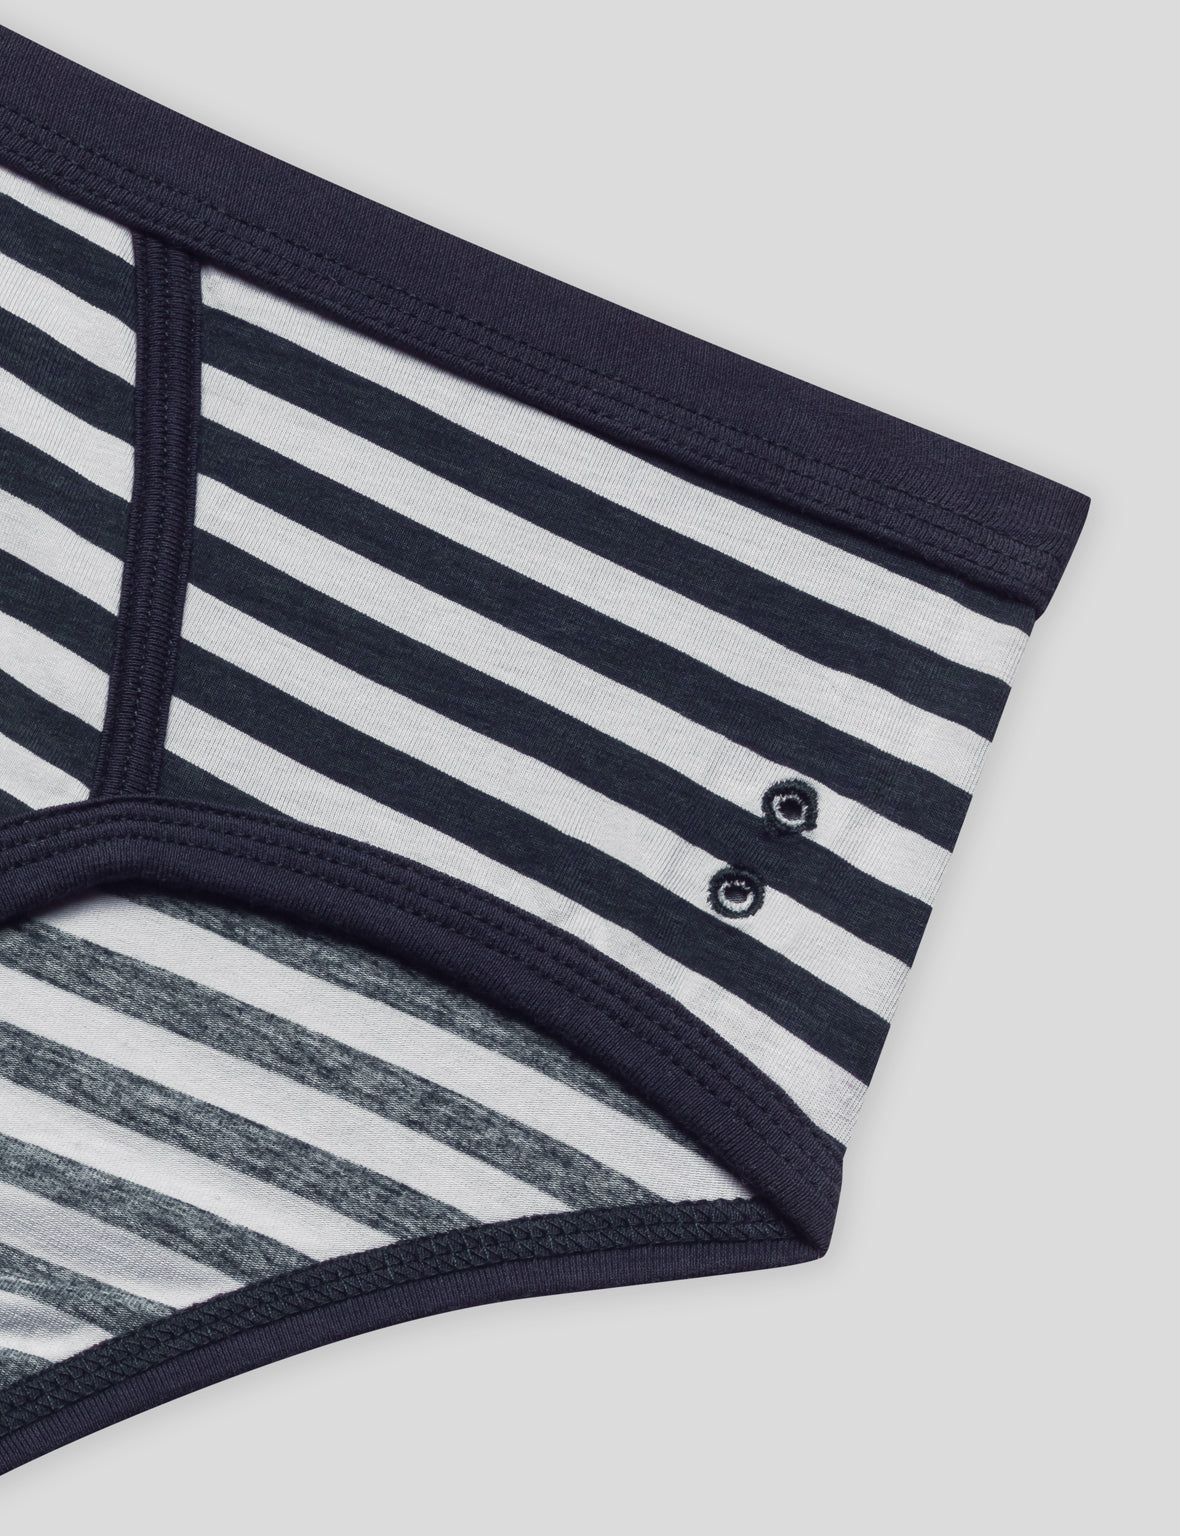 Y-Front Briefs Stripes - navy/white